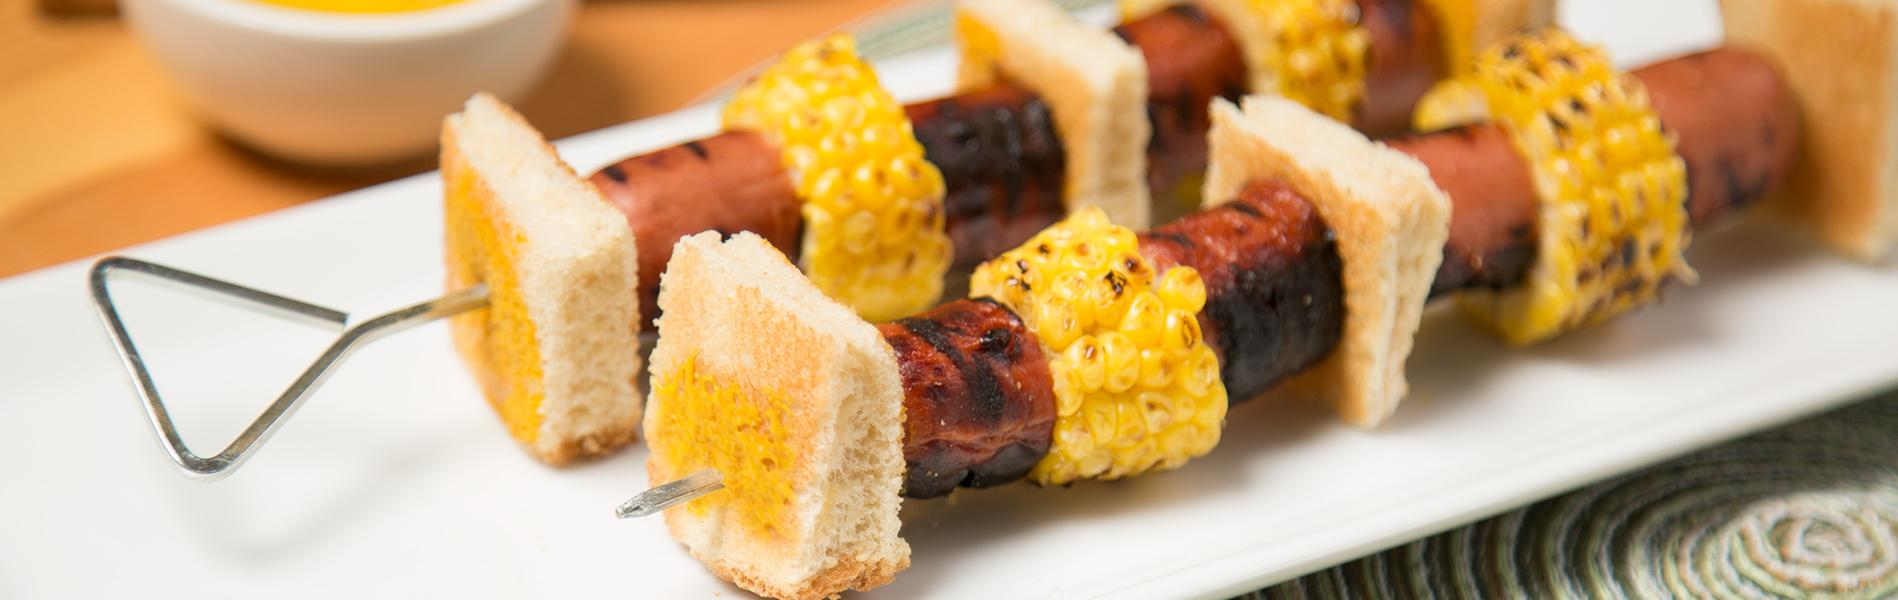 Grilled Hot Dog, Corn and bread on a skewer